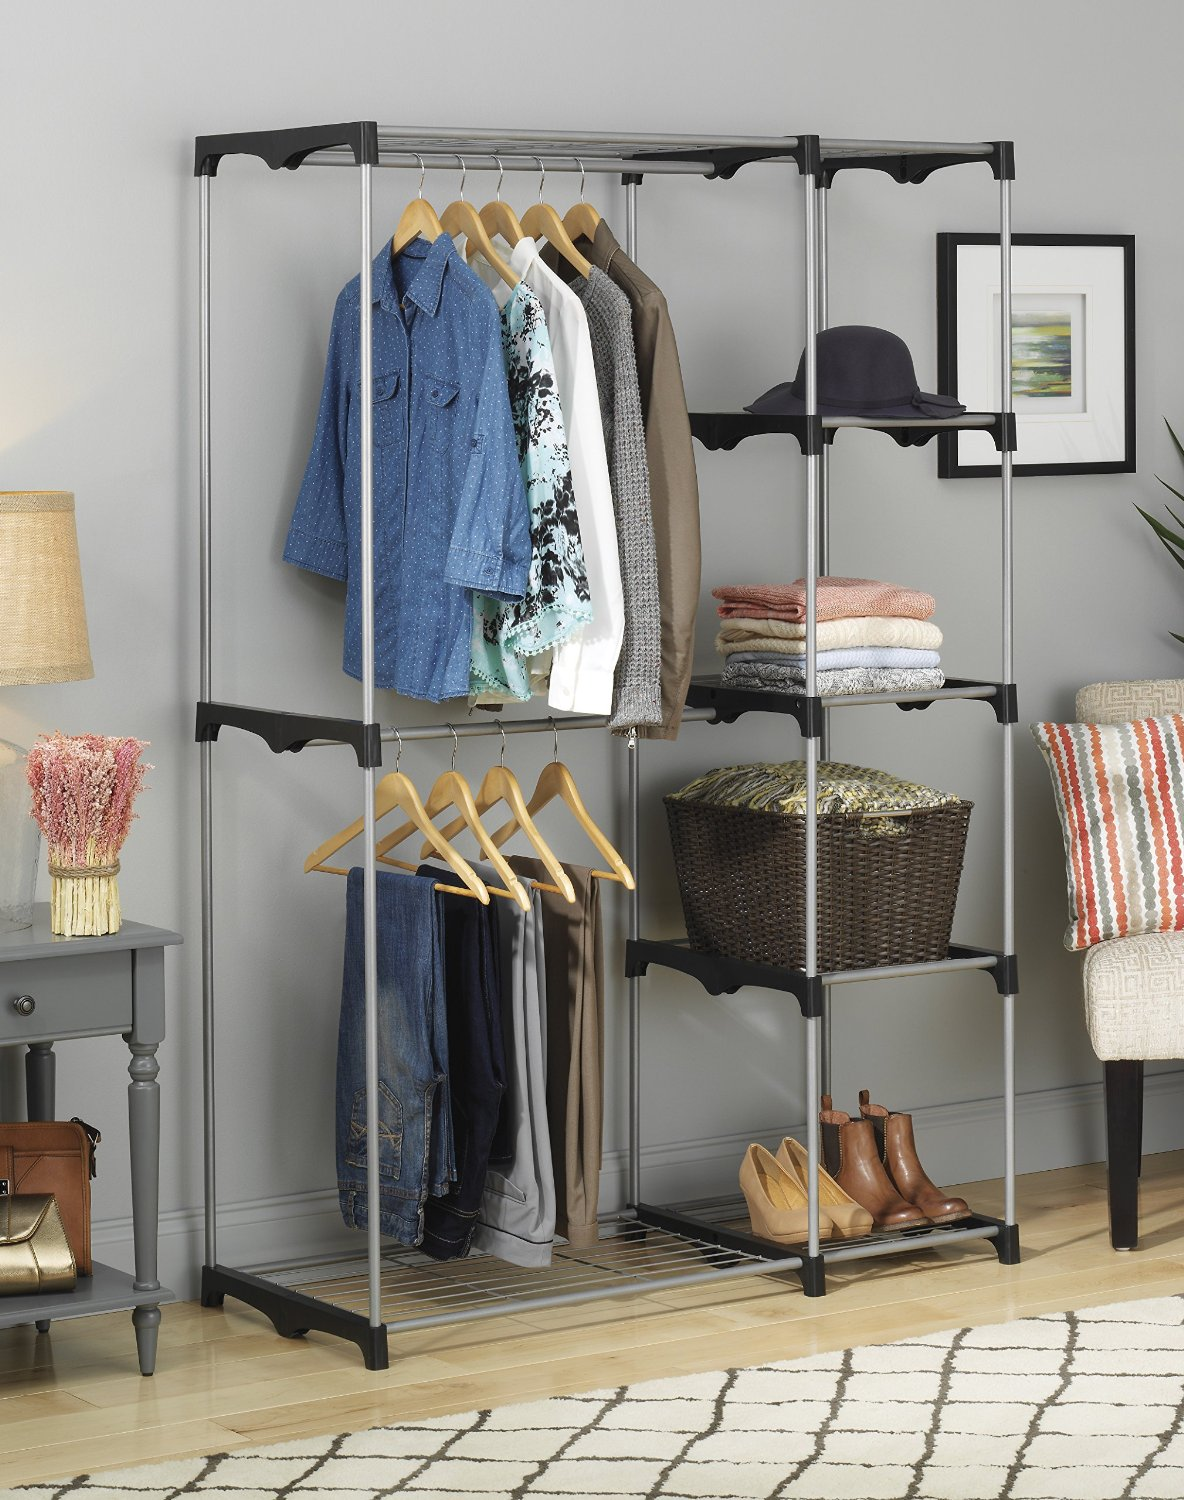 Amazon.com: Whitmore Double Rod Freestanding Closet For Just $32.15 Shipped!